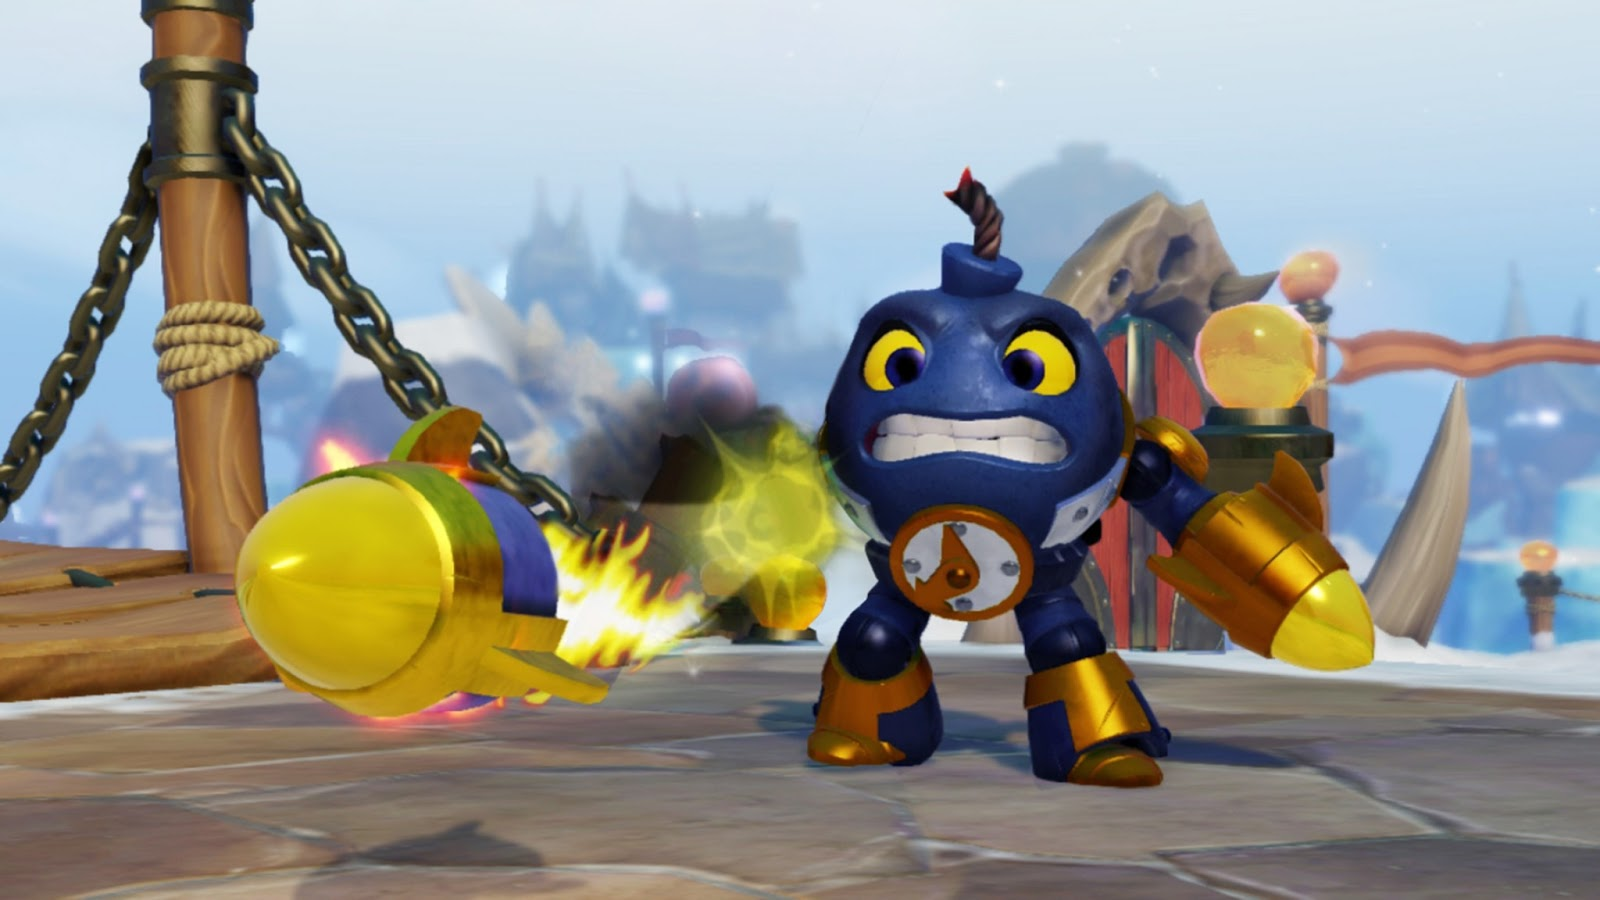 The new Skylanders swap force characters are very strong and robust